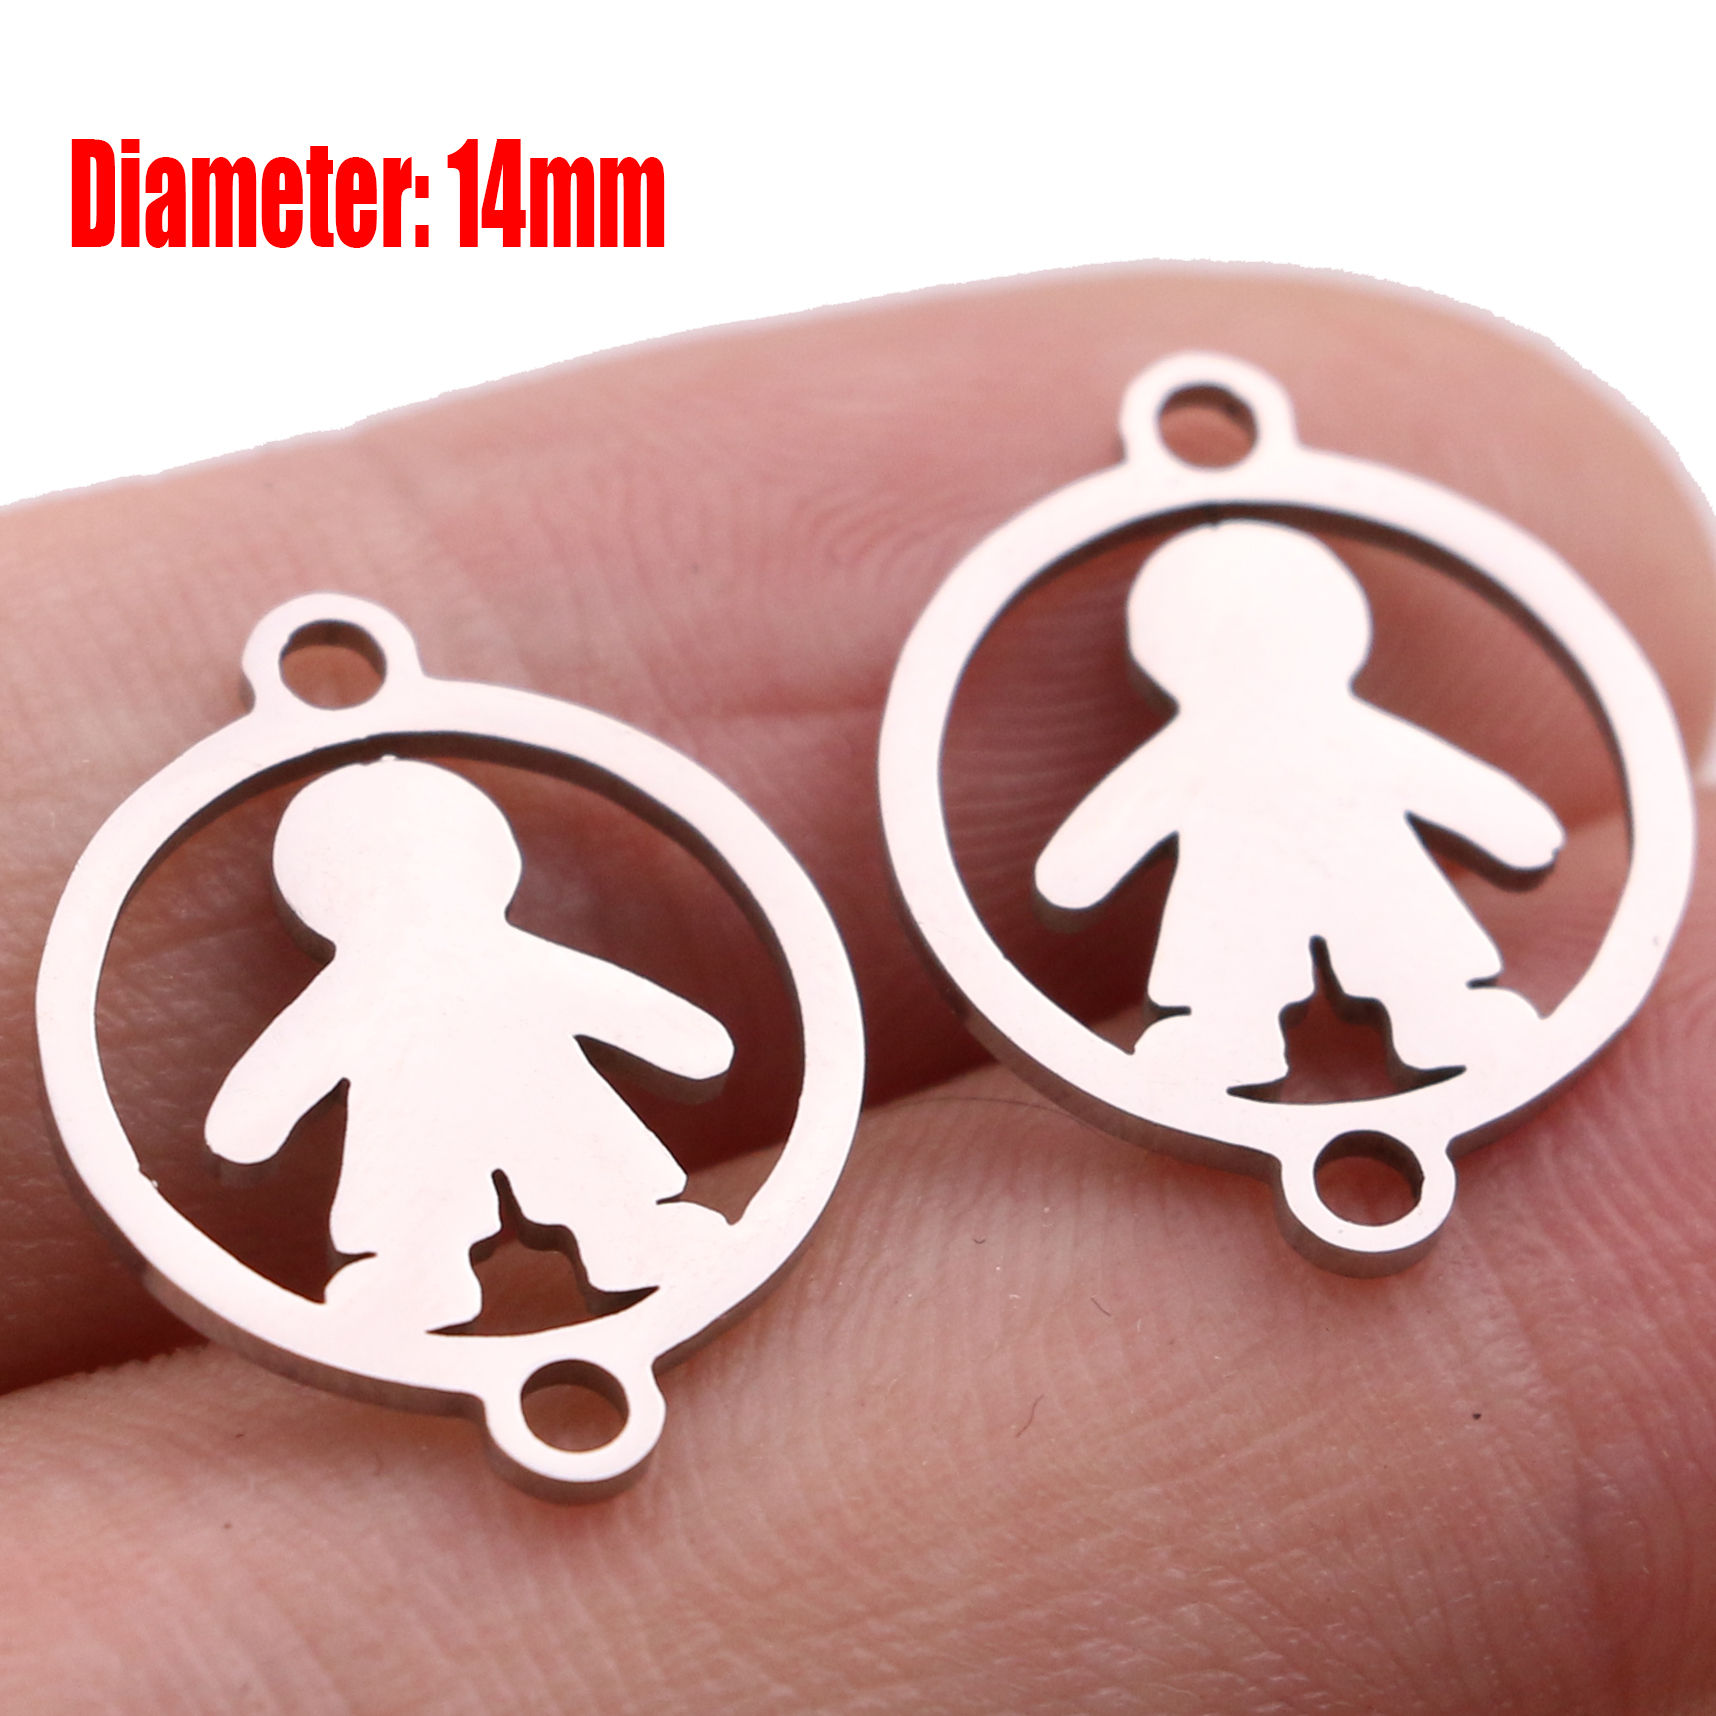 5pcs Family Chain Stainless Steel Pendant Necklace Parents and Children Necklaces Gold/steel Jewelry Gift for Mom Dad New Twice - Цвет: Steel 24